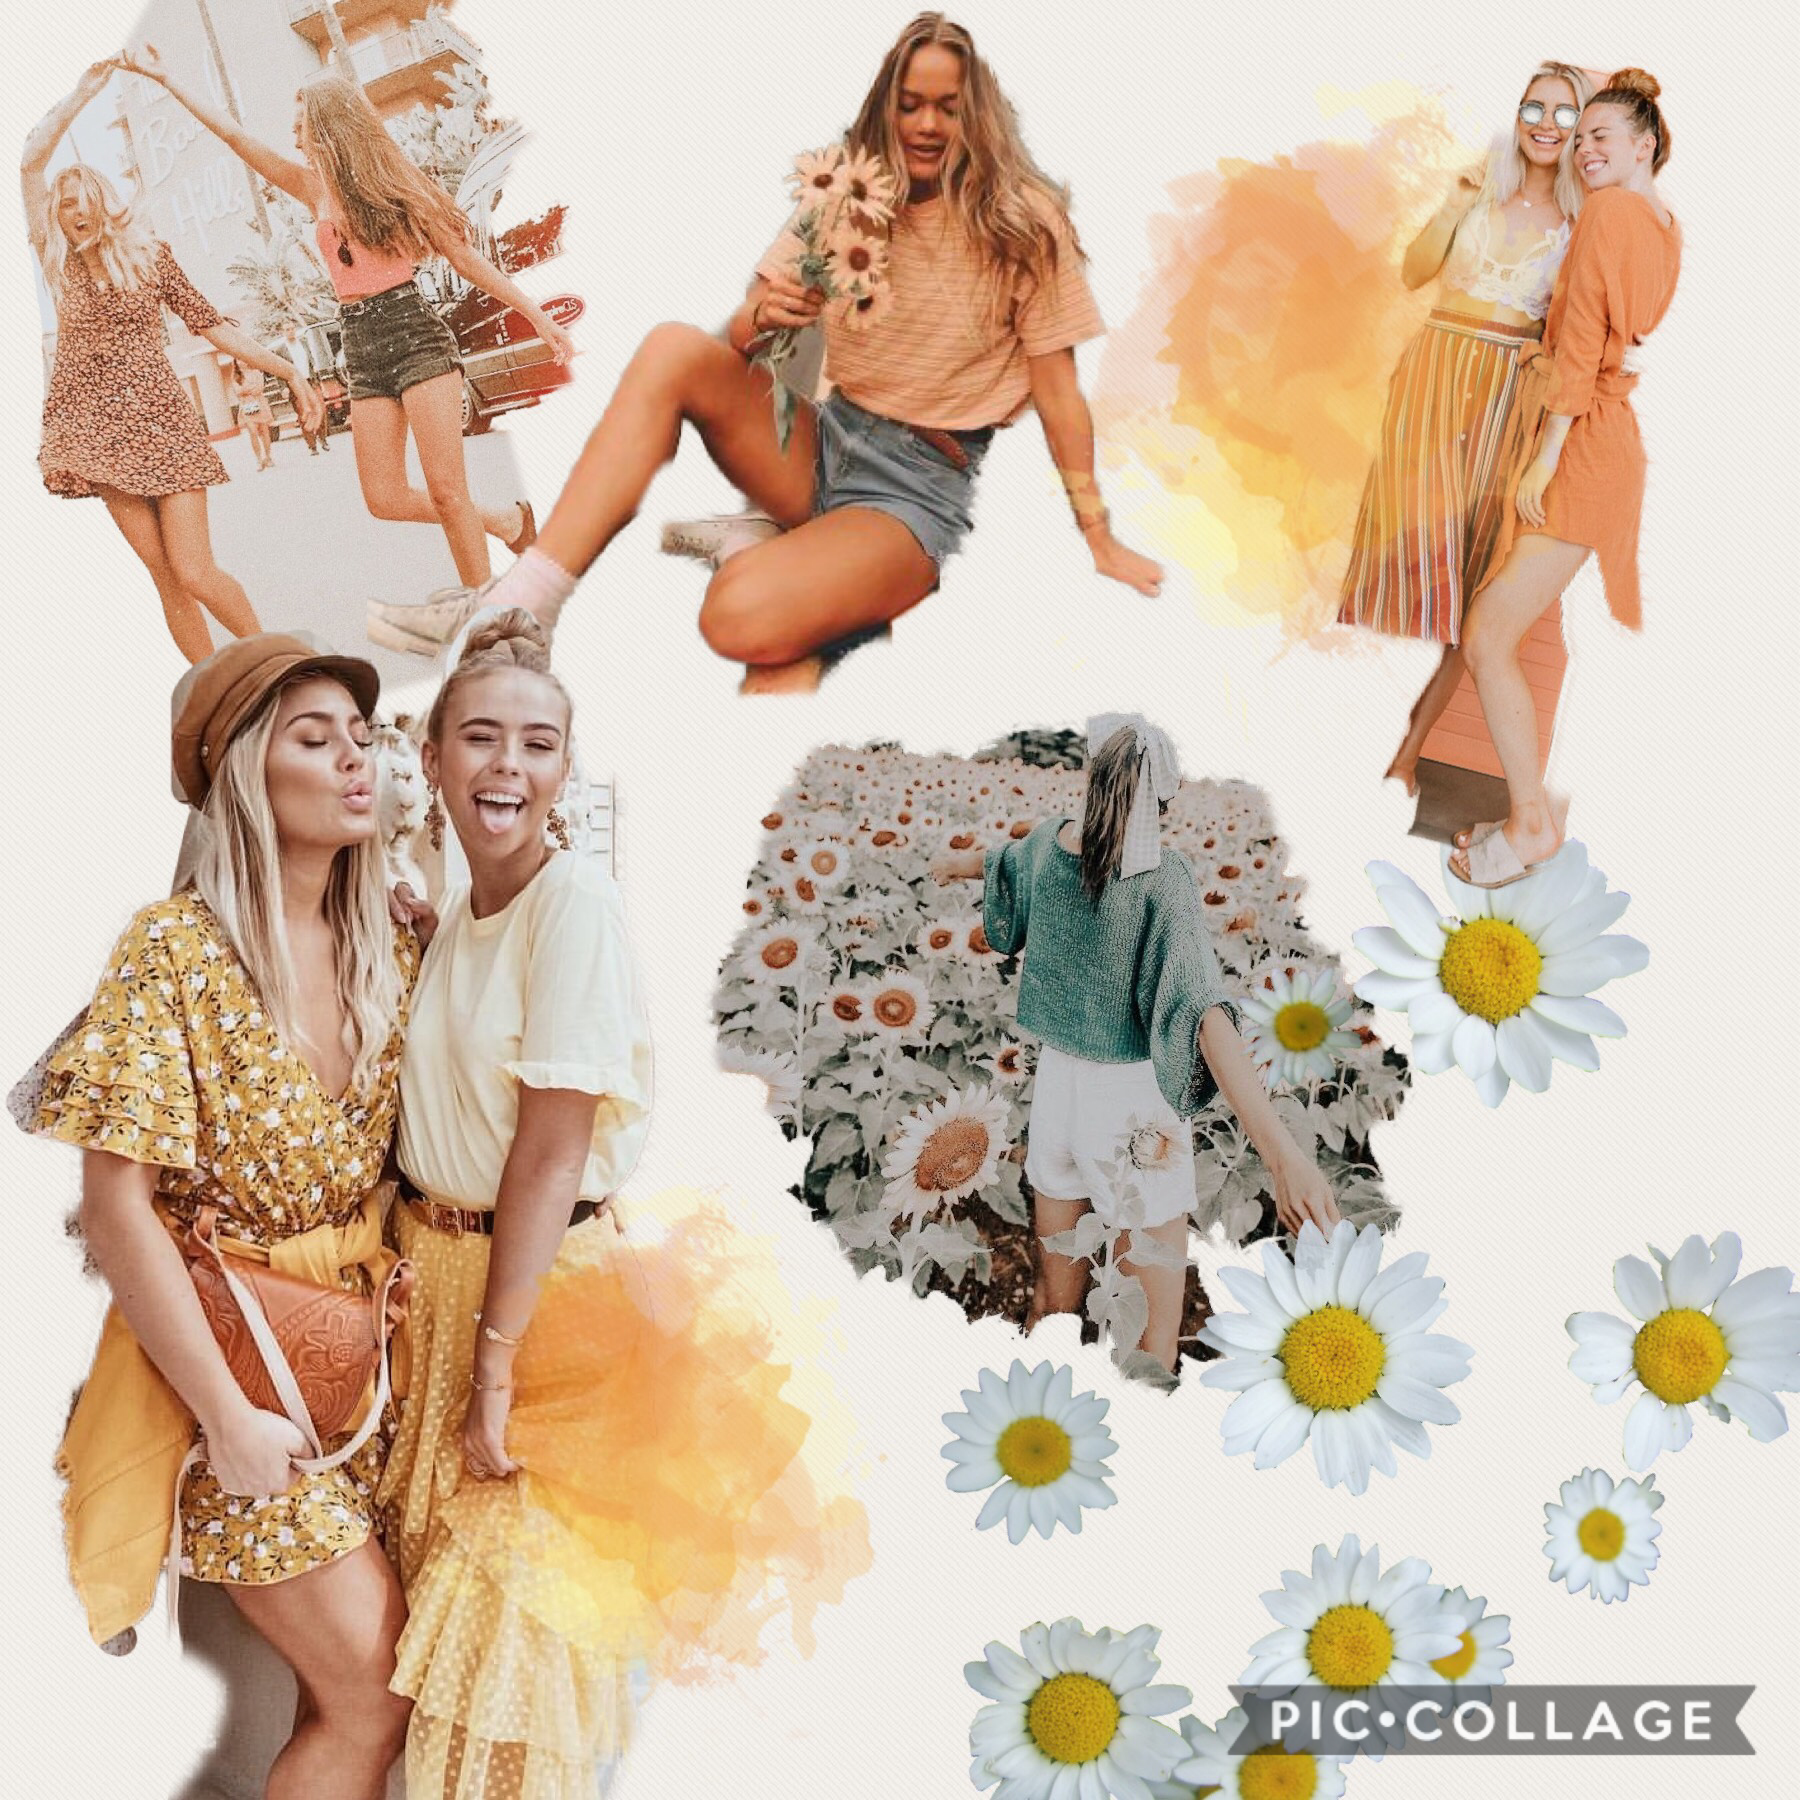 Not the best but I tried! Credit to -peacefulwillow- for the pics!